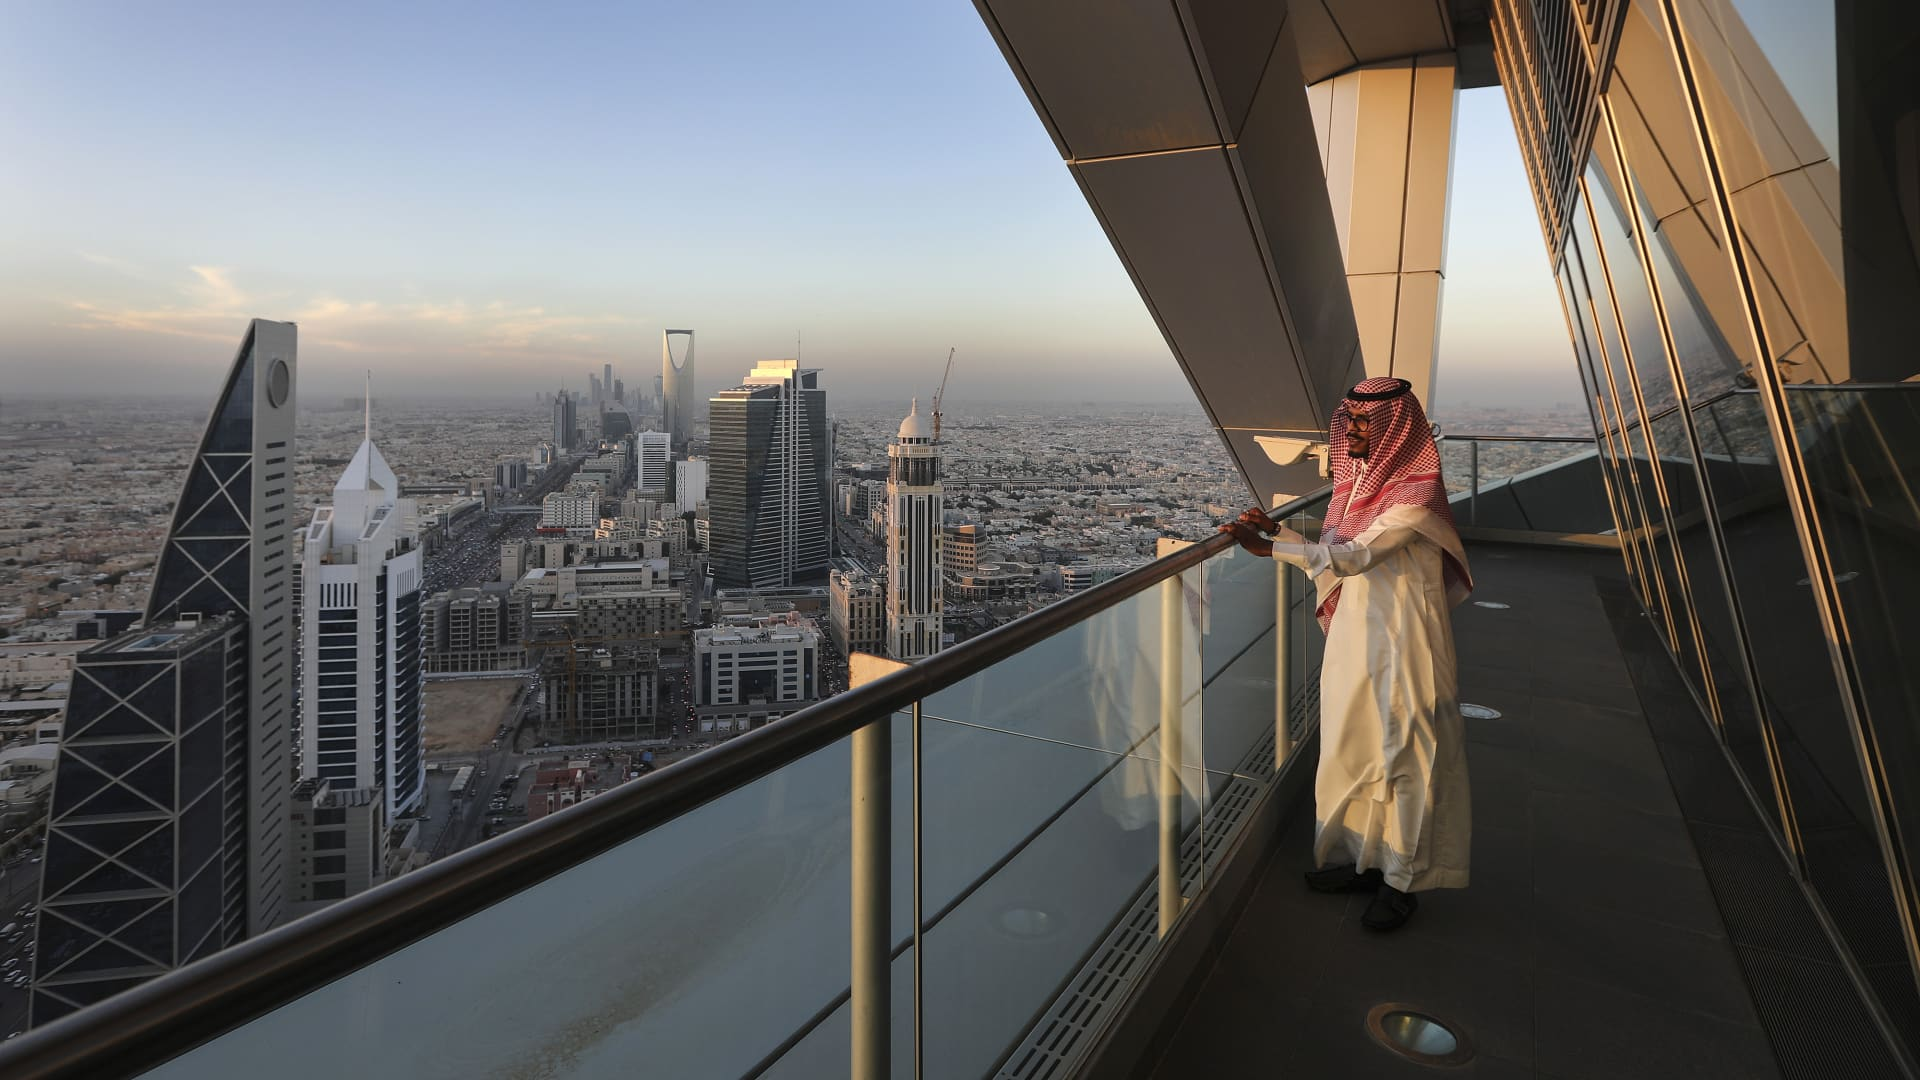 Skyline of Riyadh in Saudi Arabia.